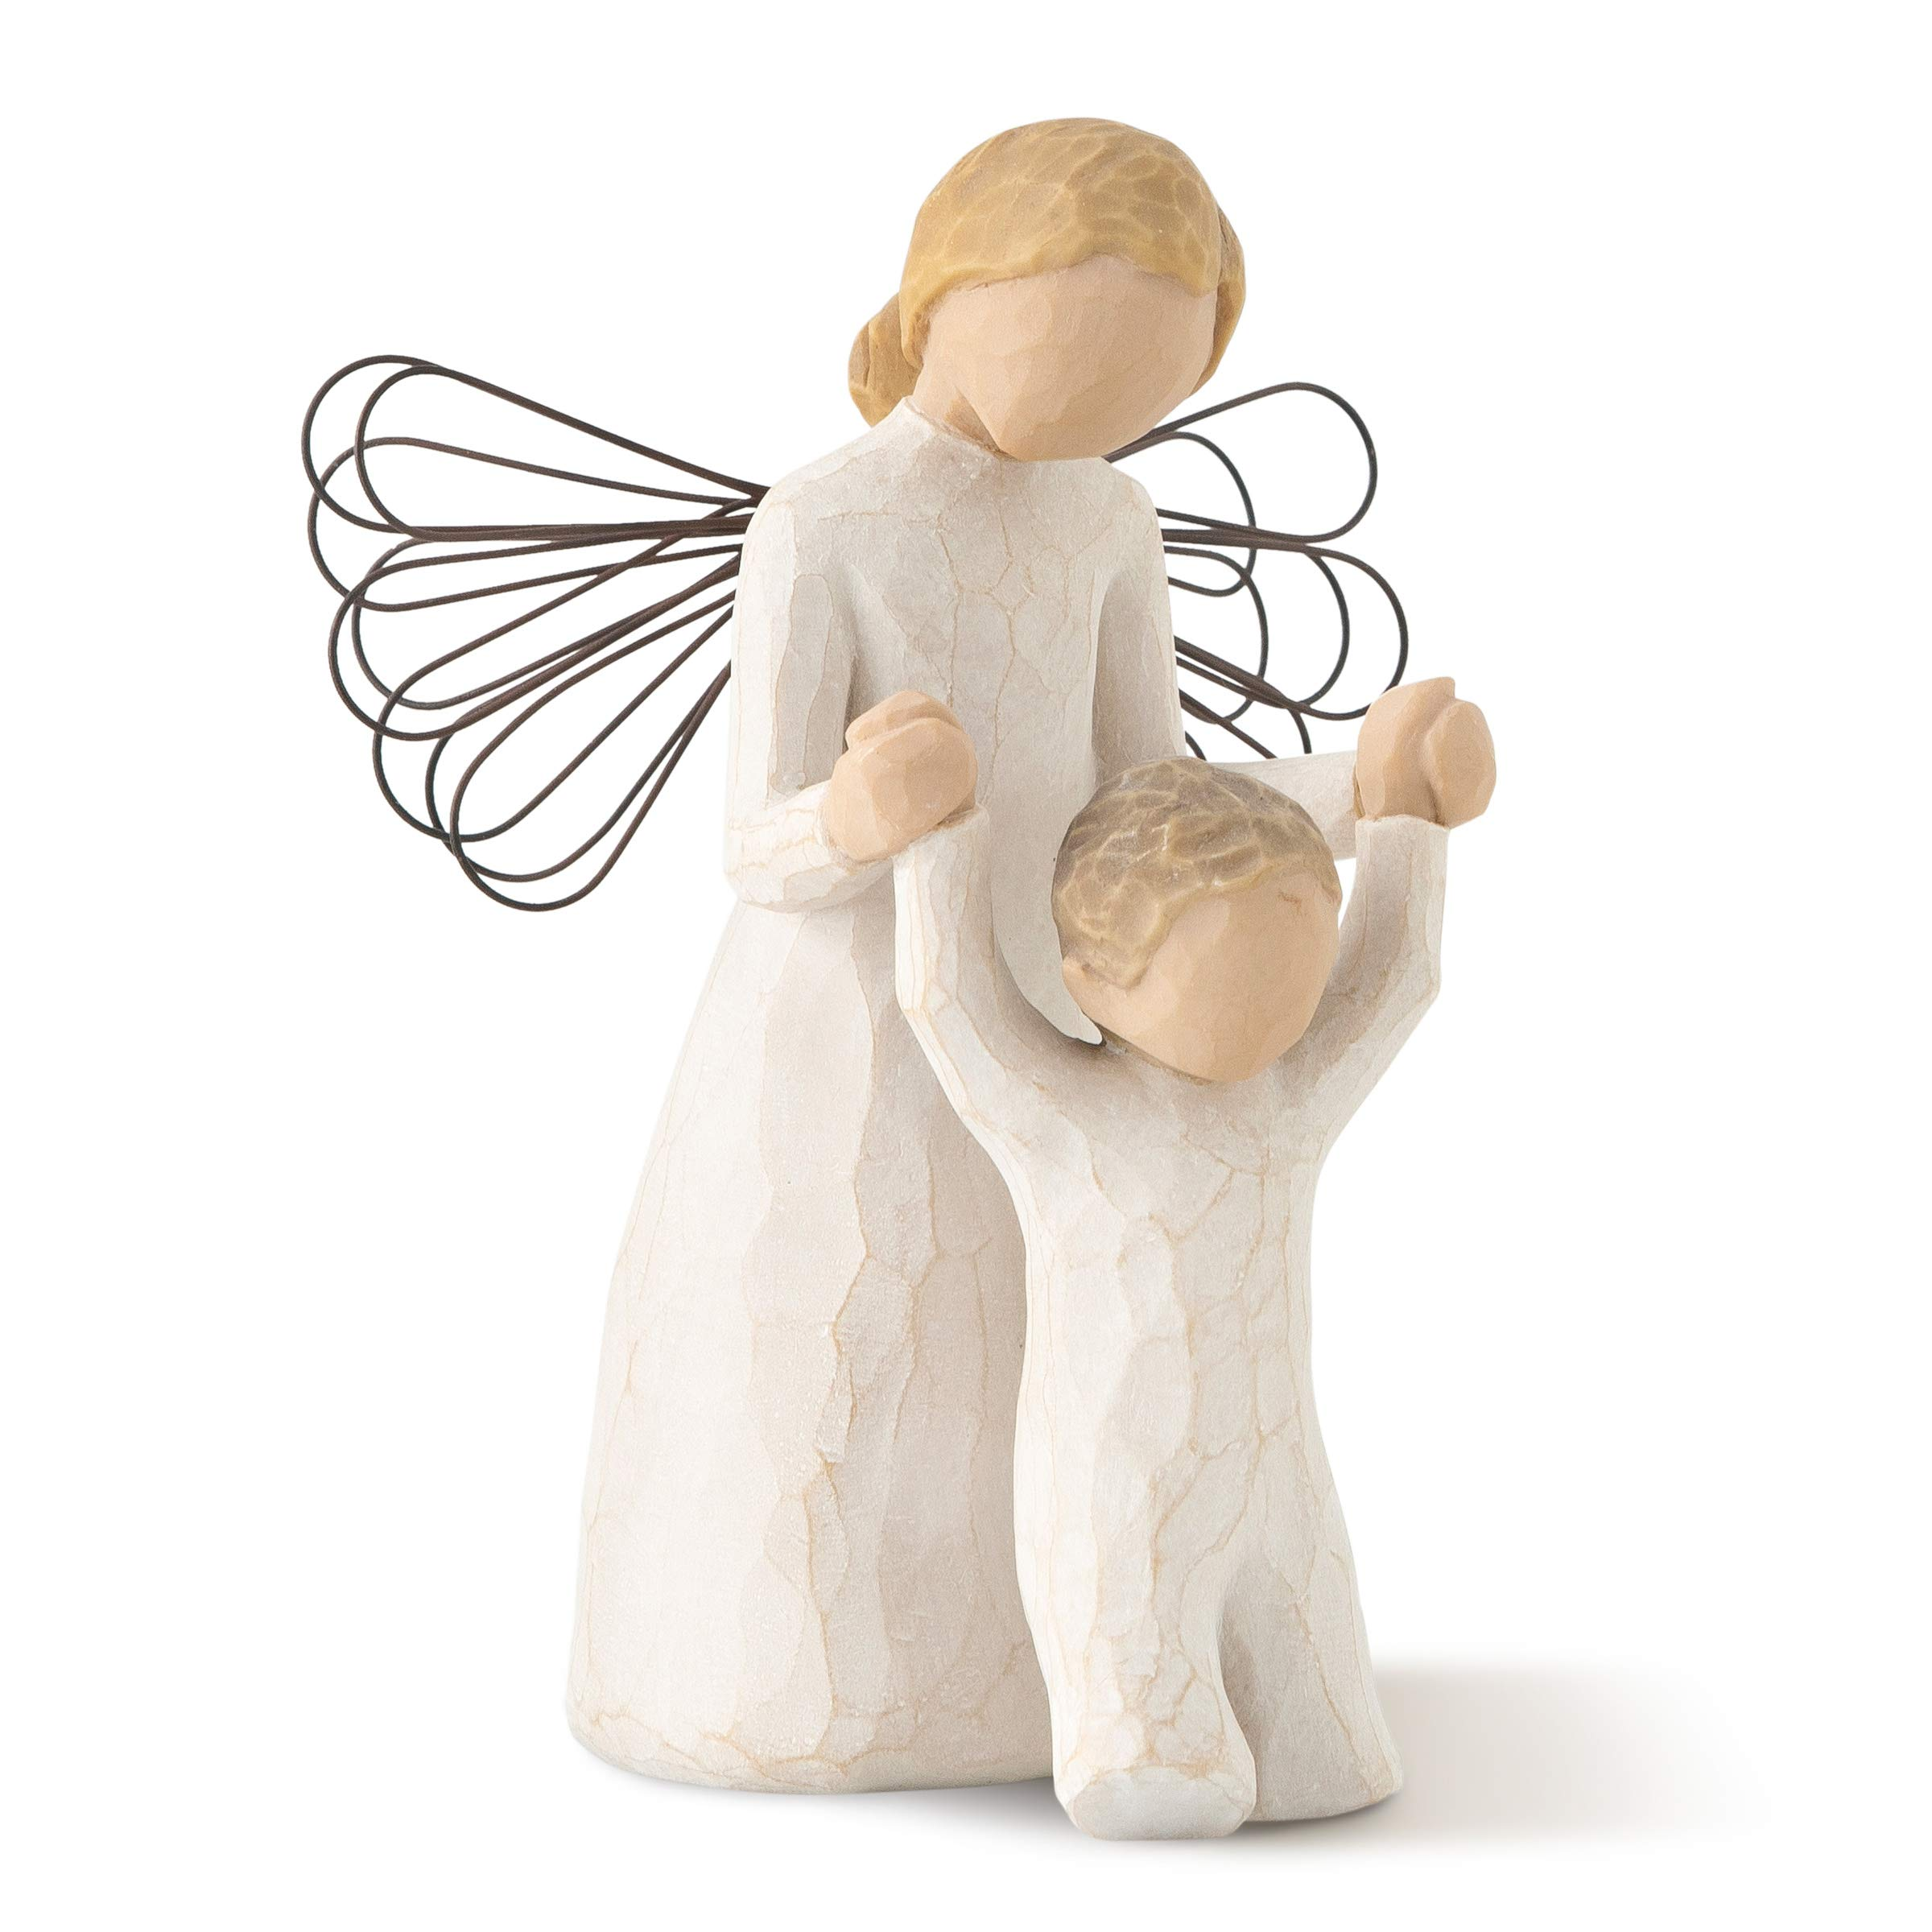 Willow Tree Courage Angel sculpted hand-painted figure